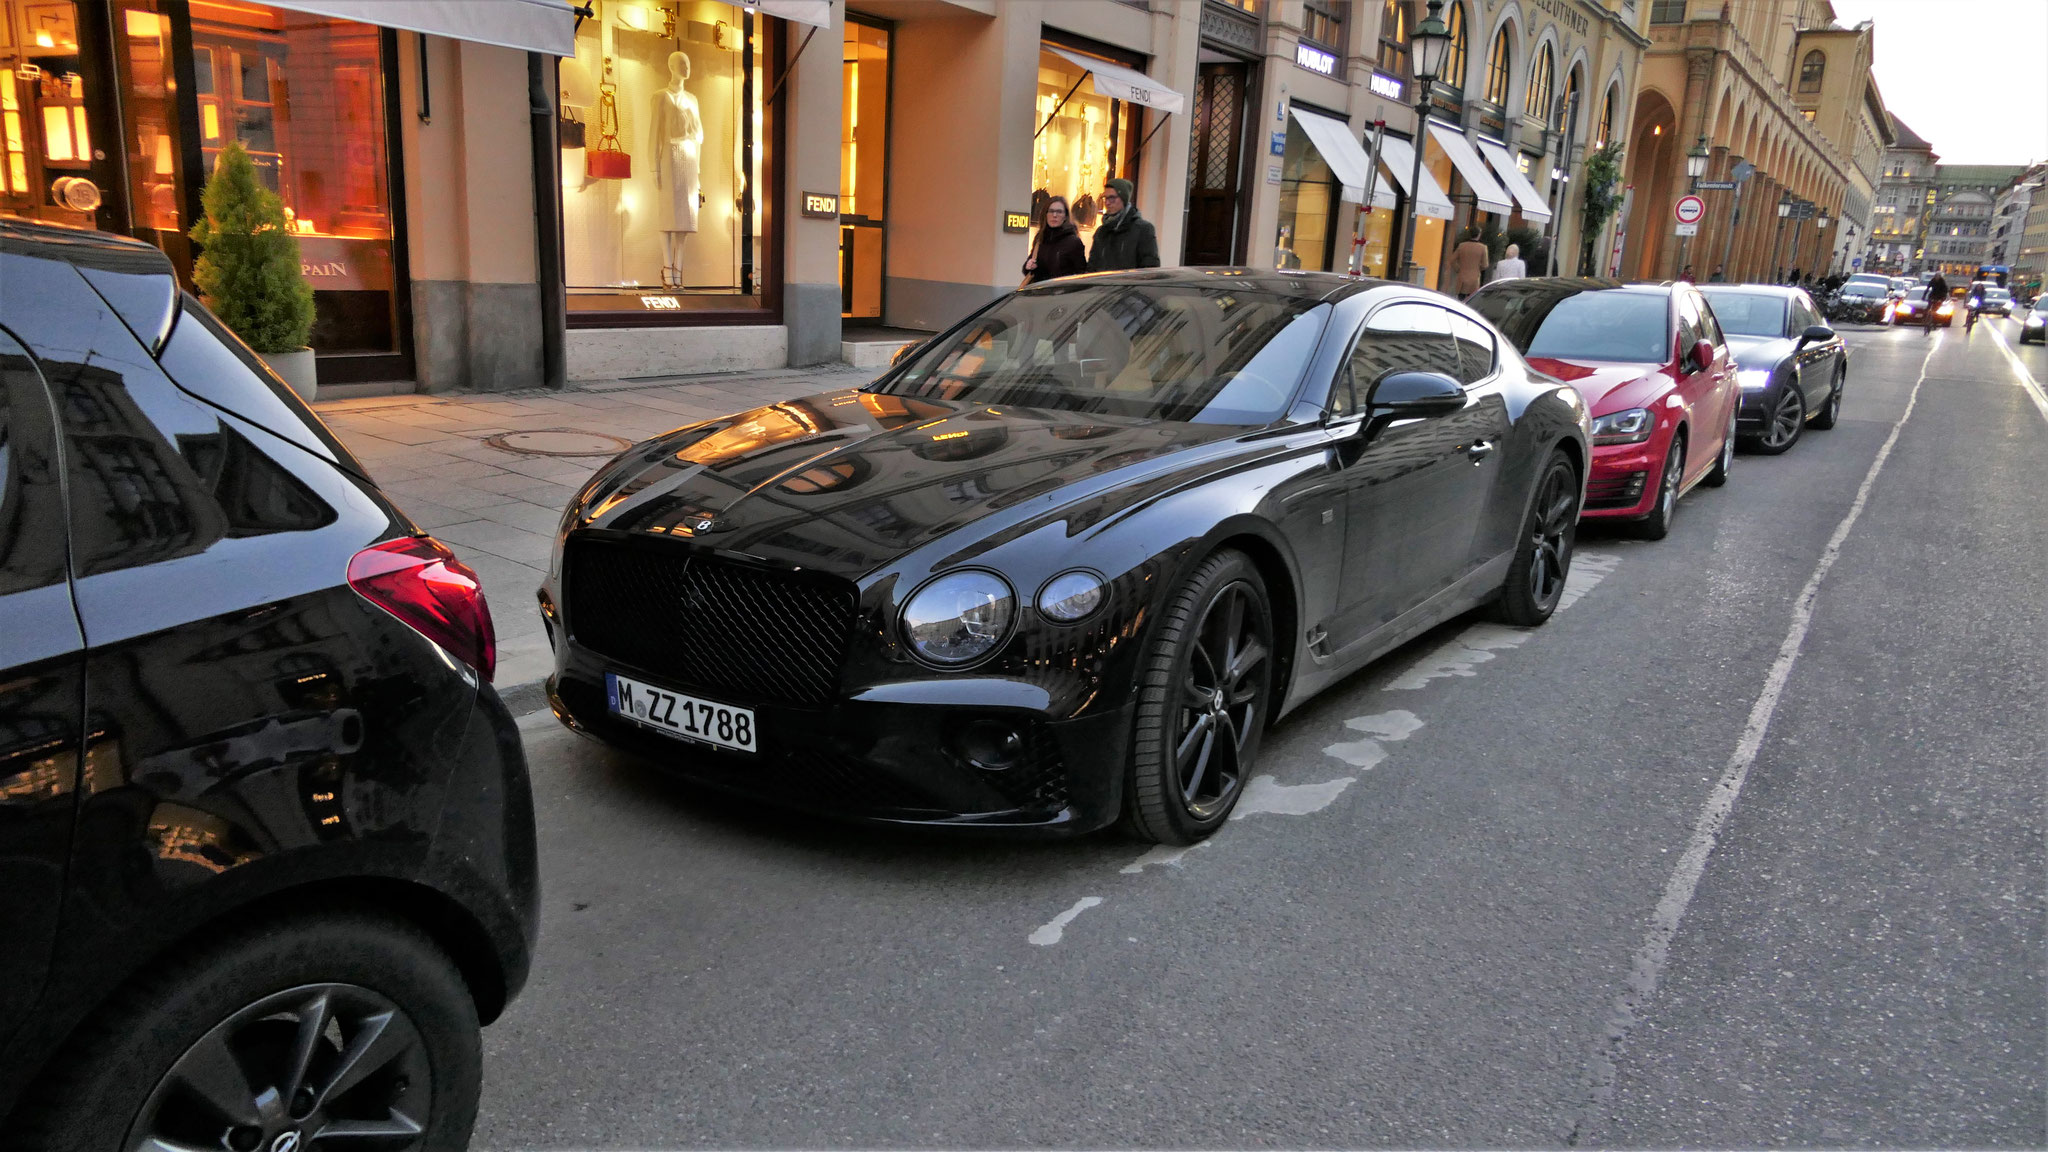 Bentley Continental GT Edition 1 - M-ZZ-1788